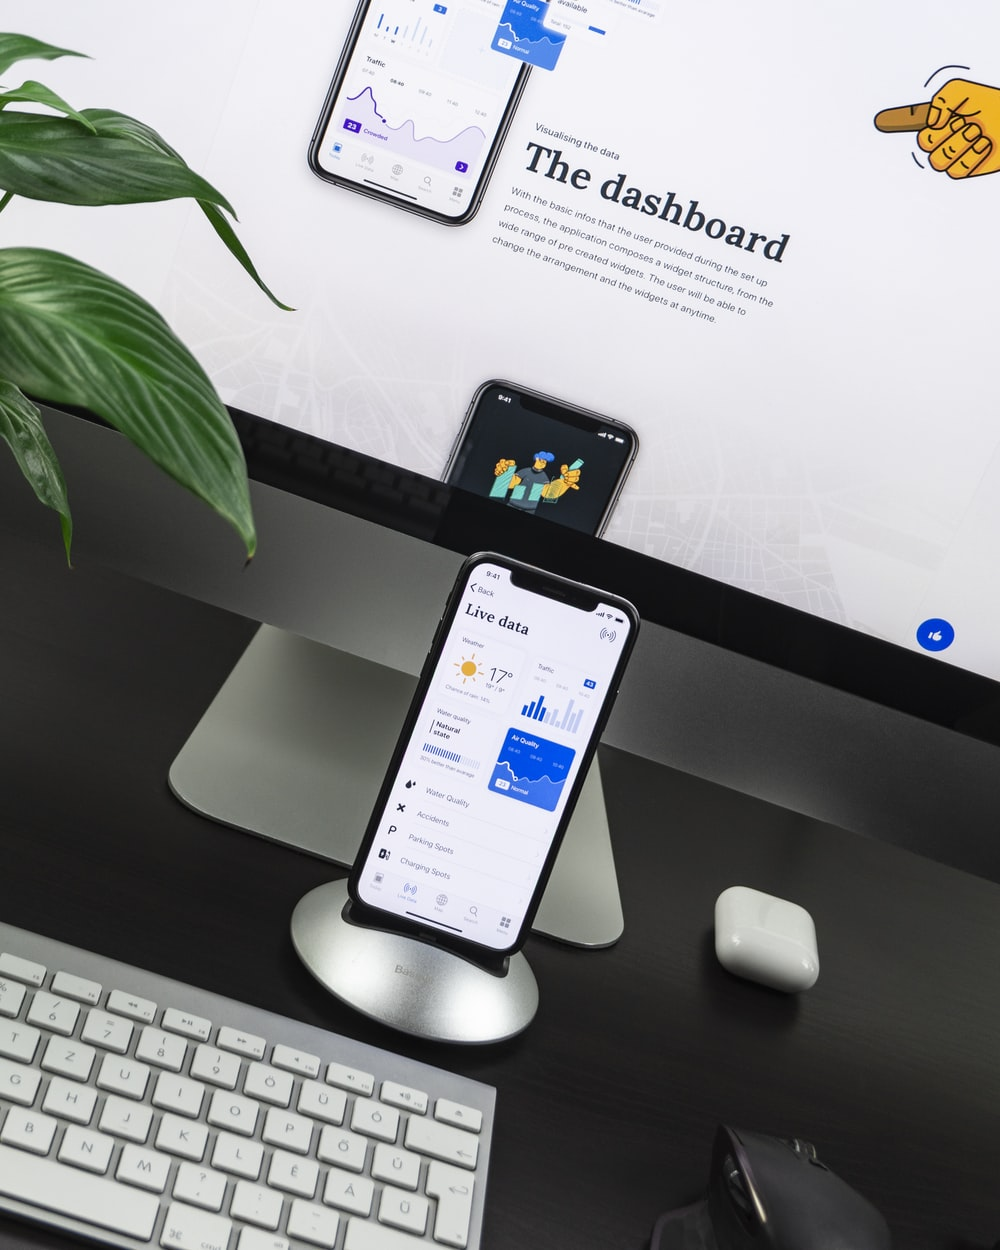 space gray iPhone X on stand near silver iMac and Apple Magic Keyboard